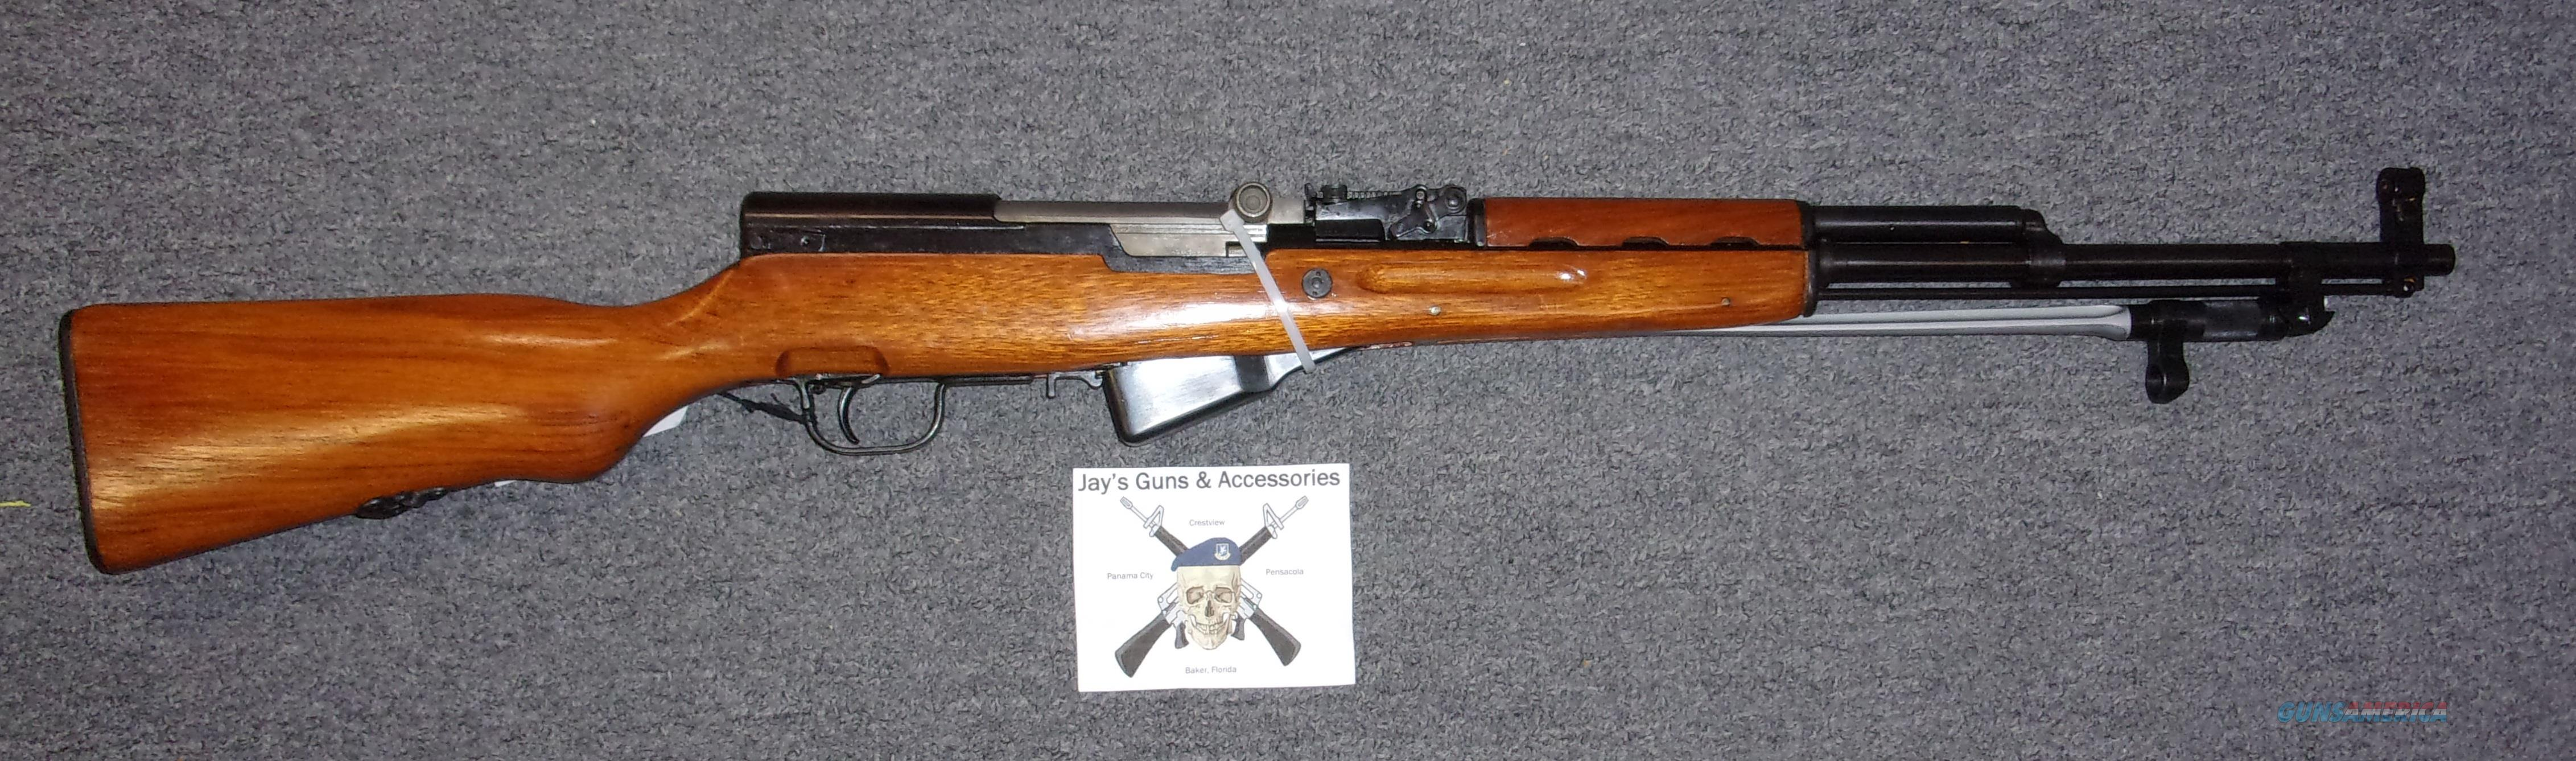 Norinco/K-Sports Imports SKS (Pre-Ban)  Guns > Rifles > Norinco Rifles